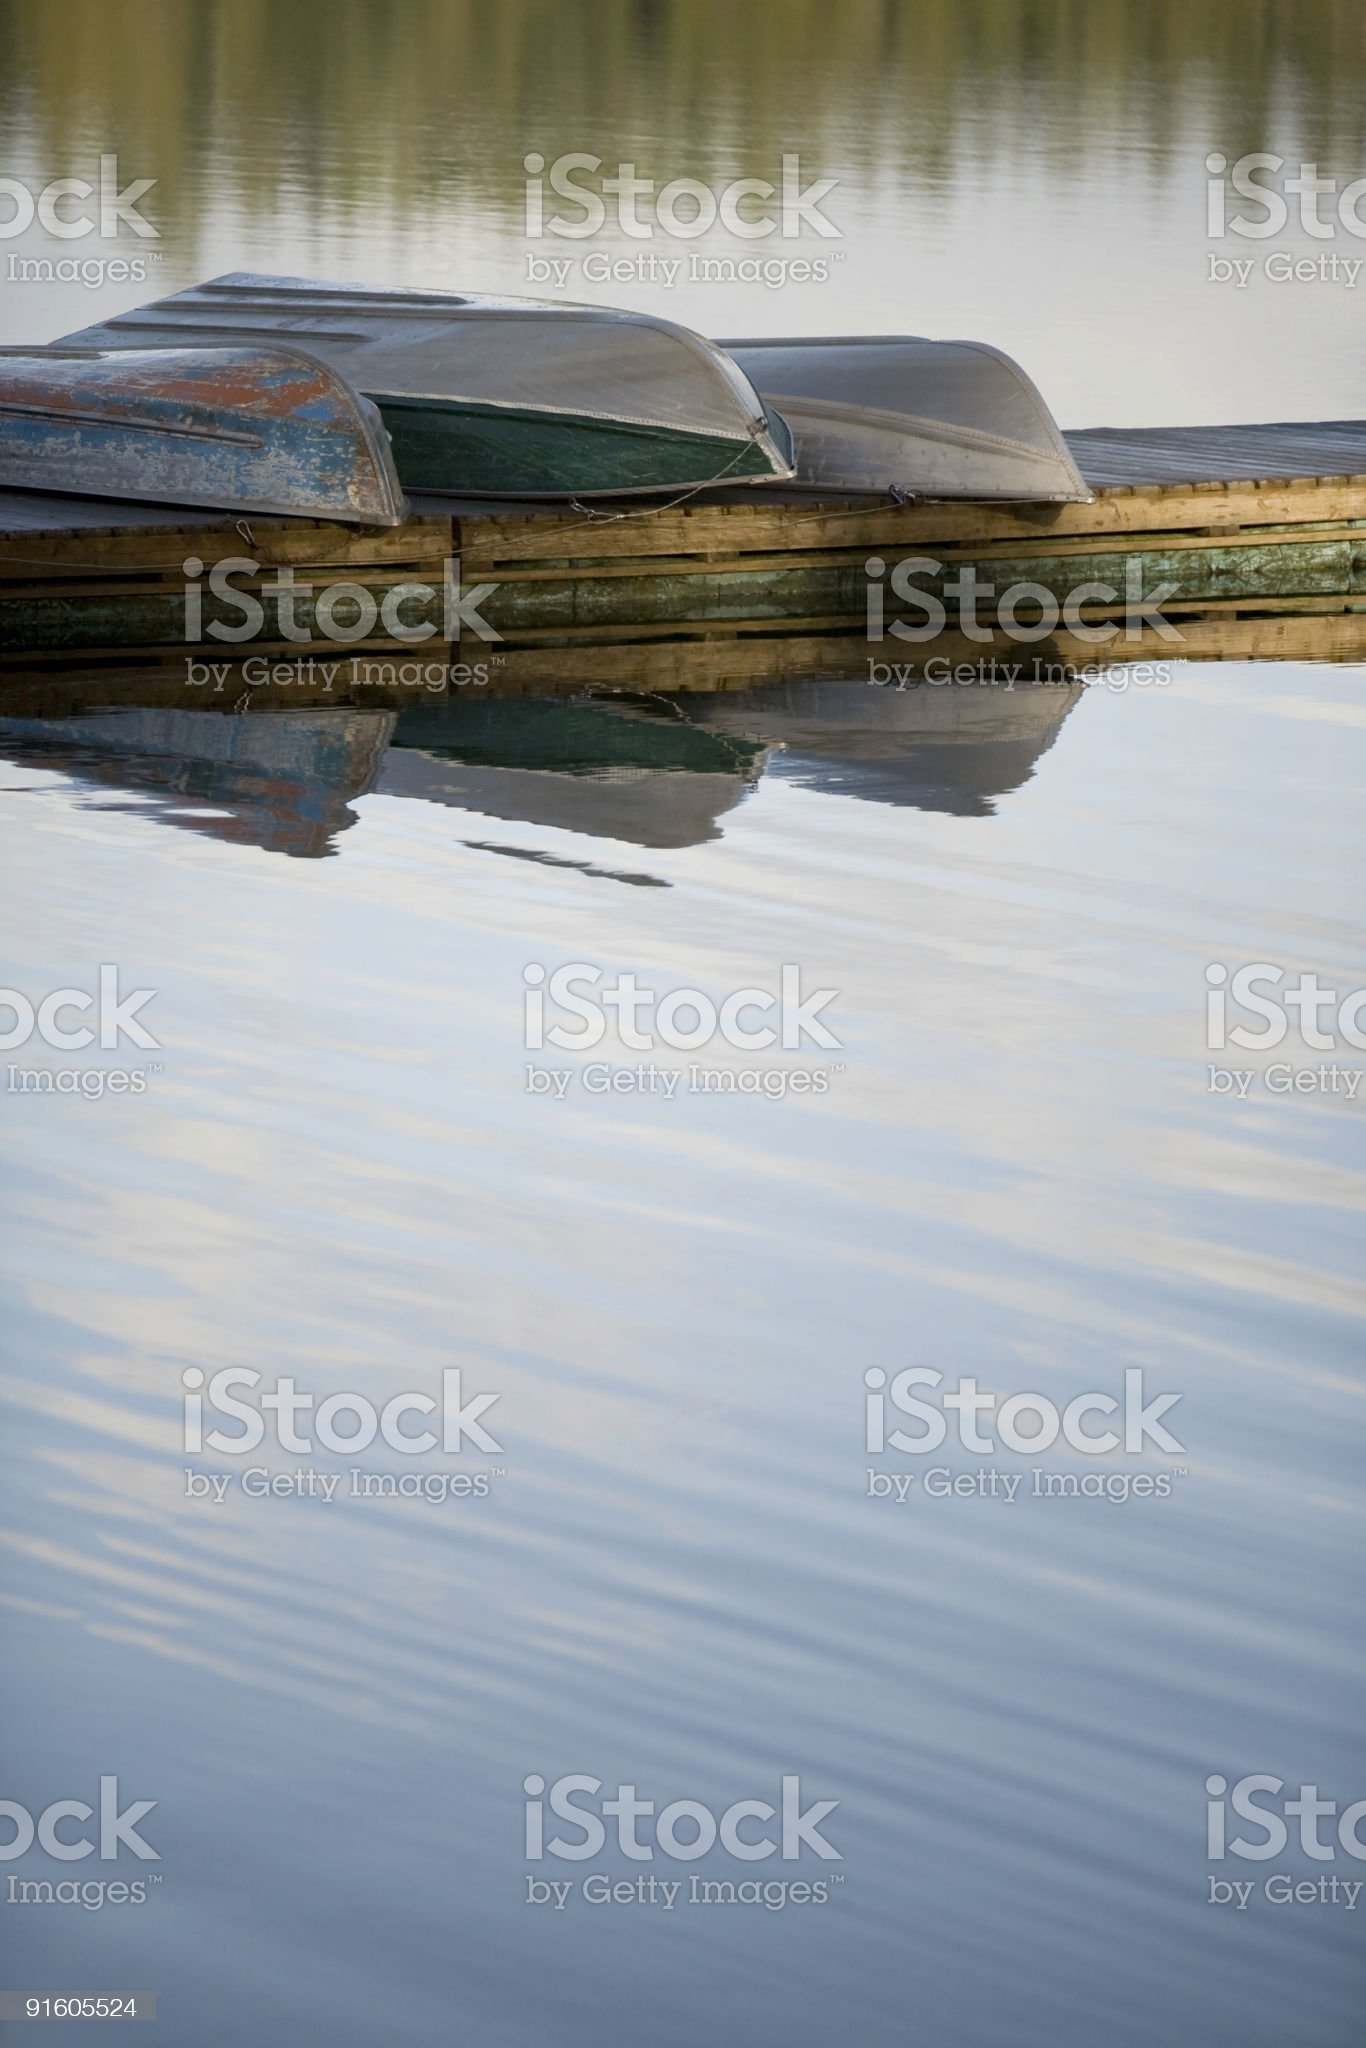 Lake Boats on Tranquil Water royalty-free stock photo